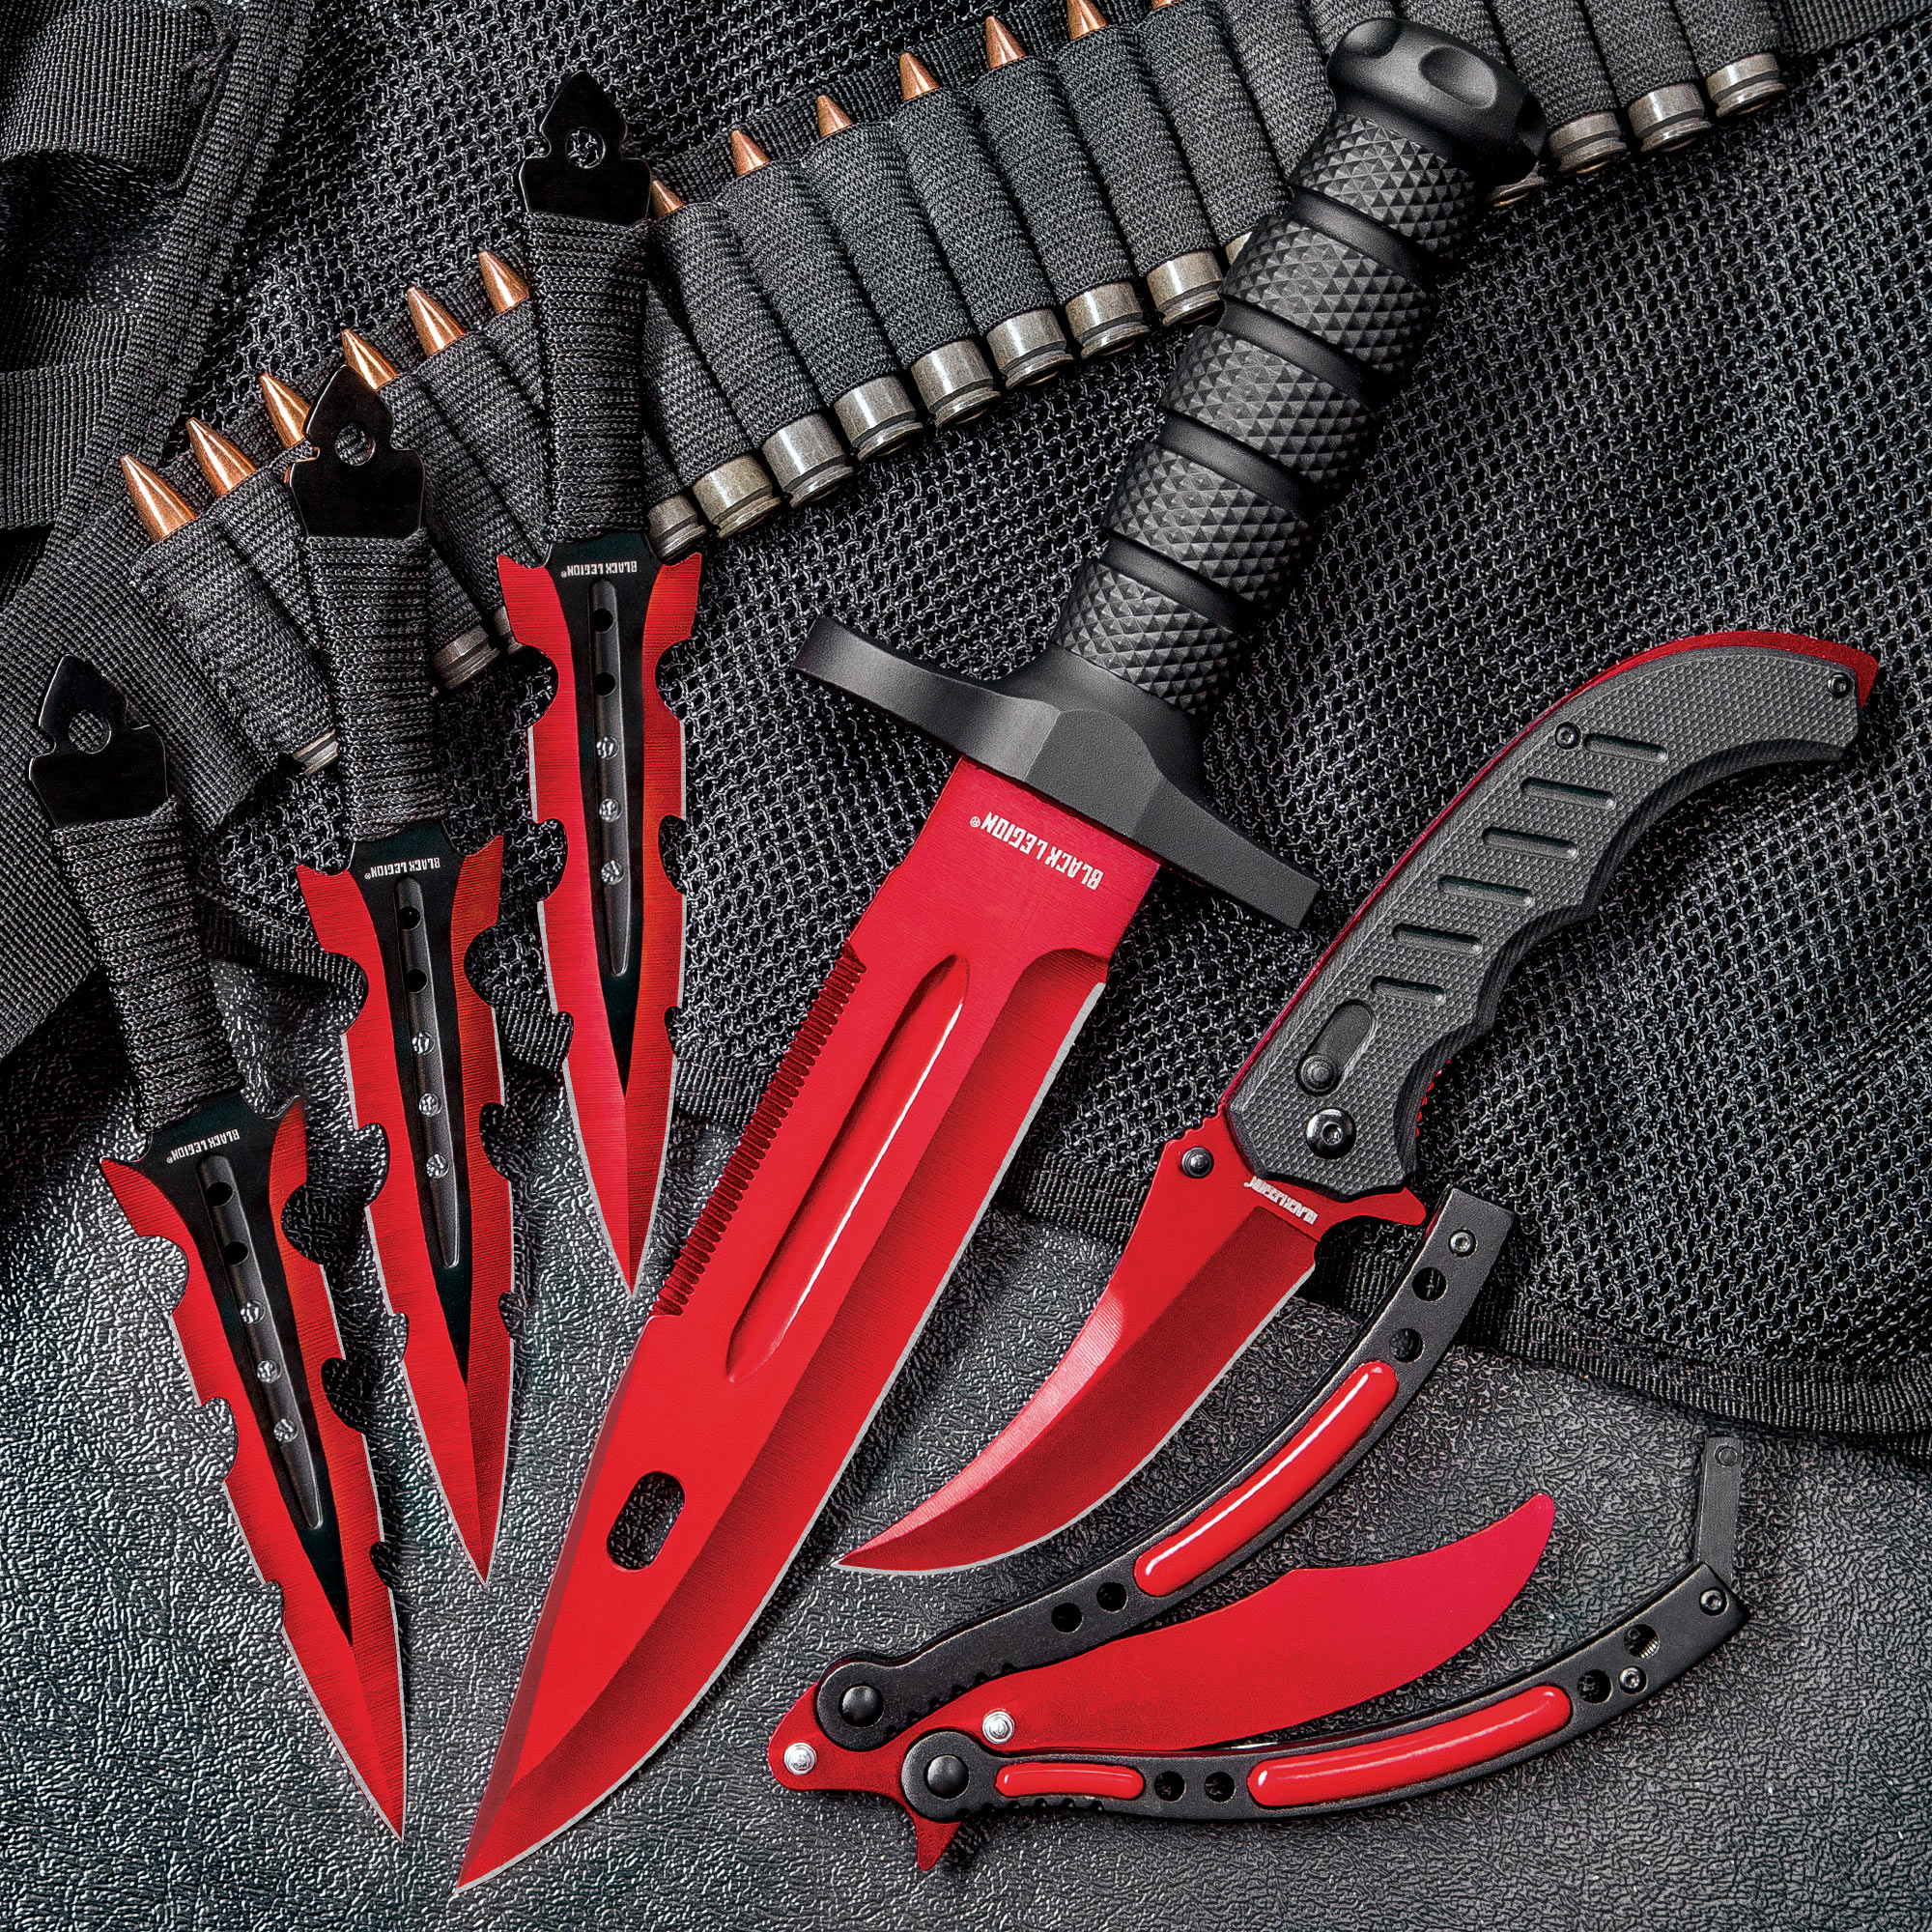 Black Legion Red Fury Knife Set - Stainless Steel Blades